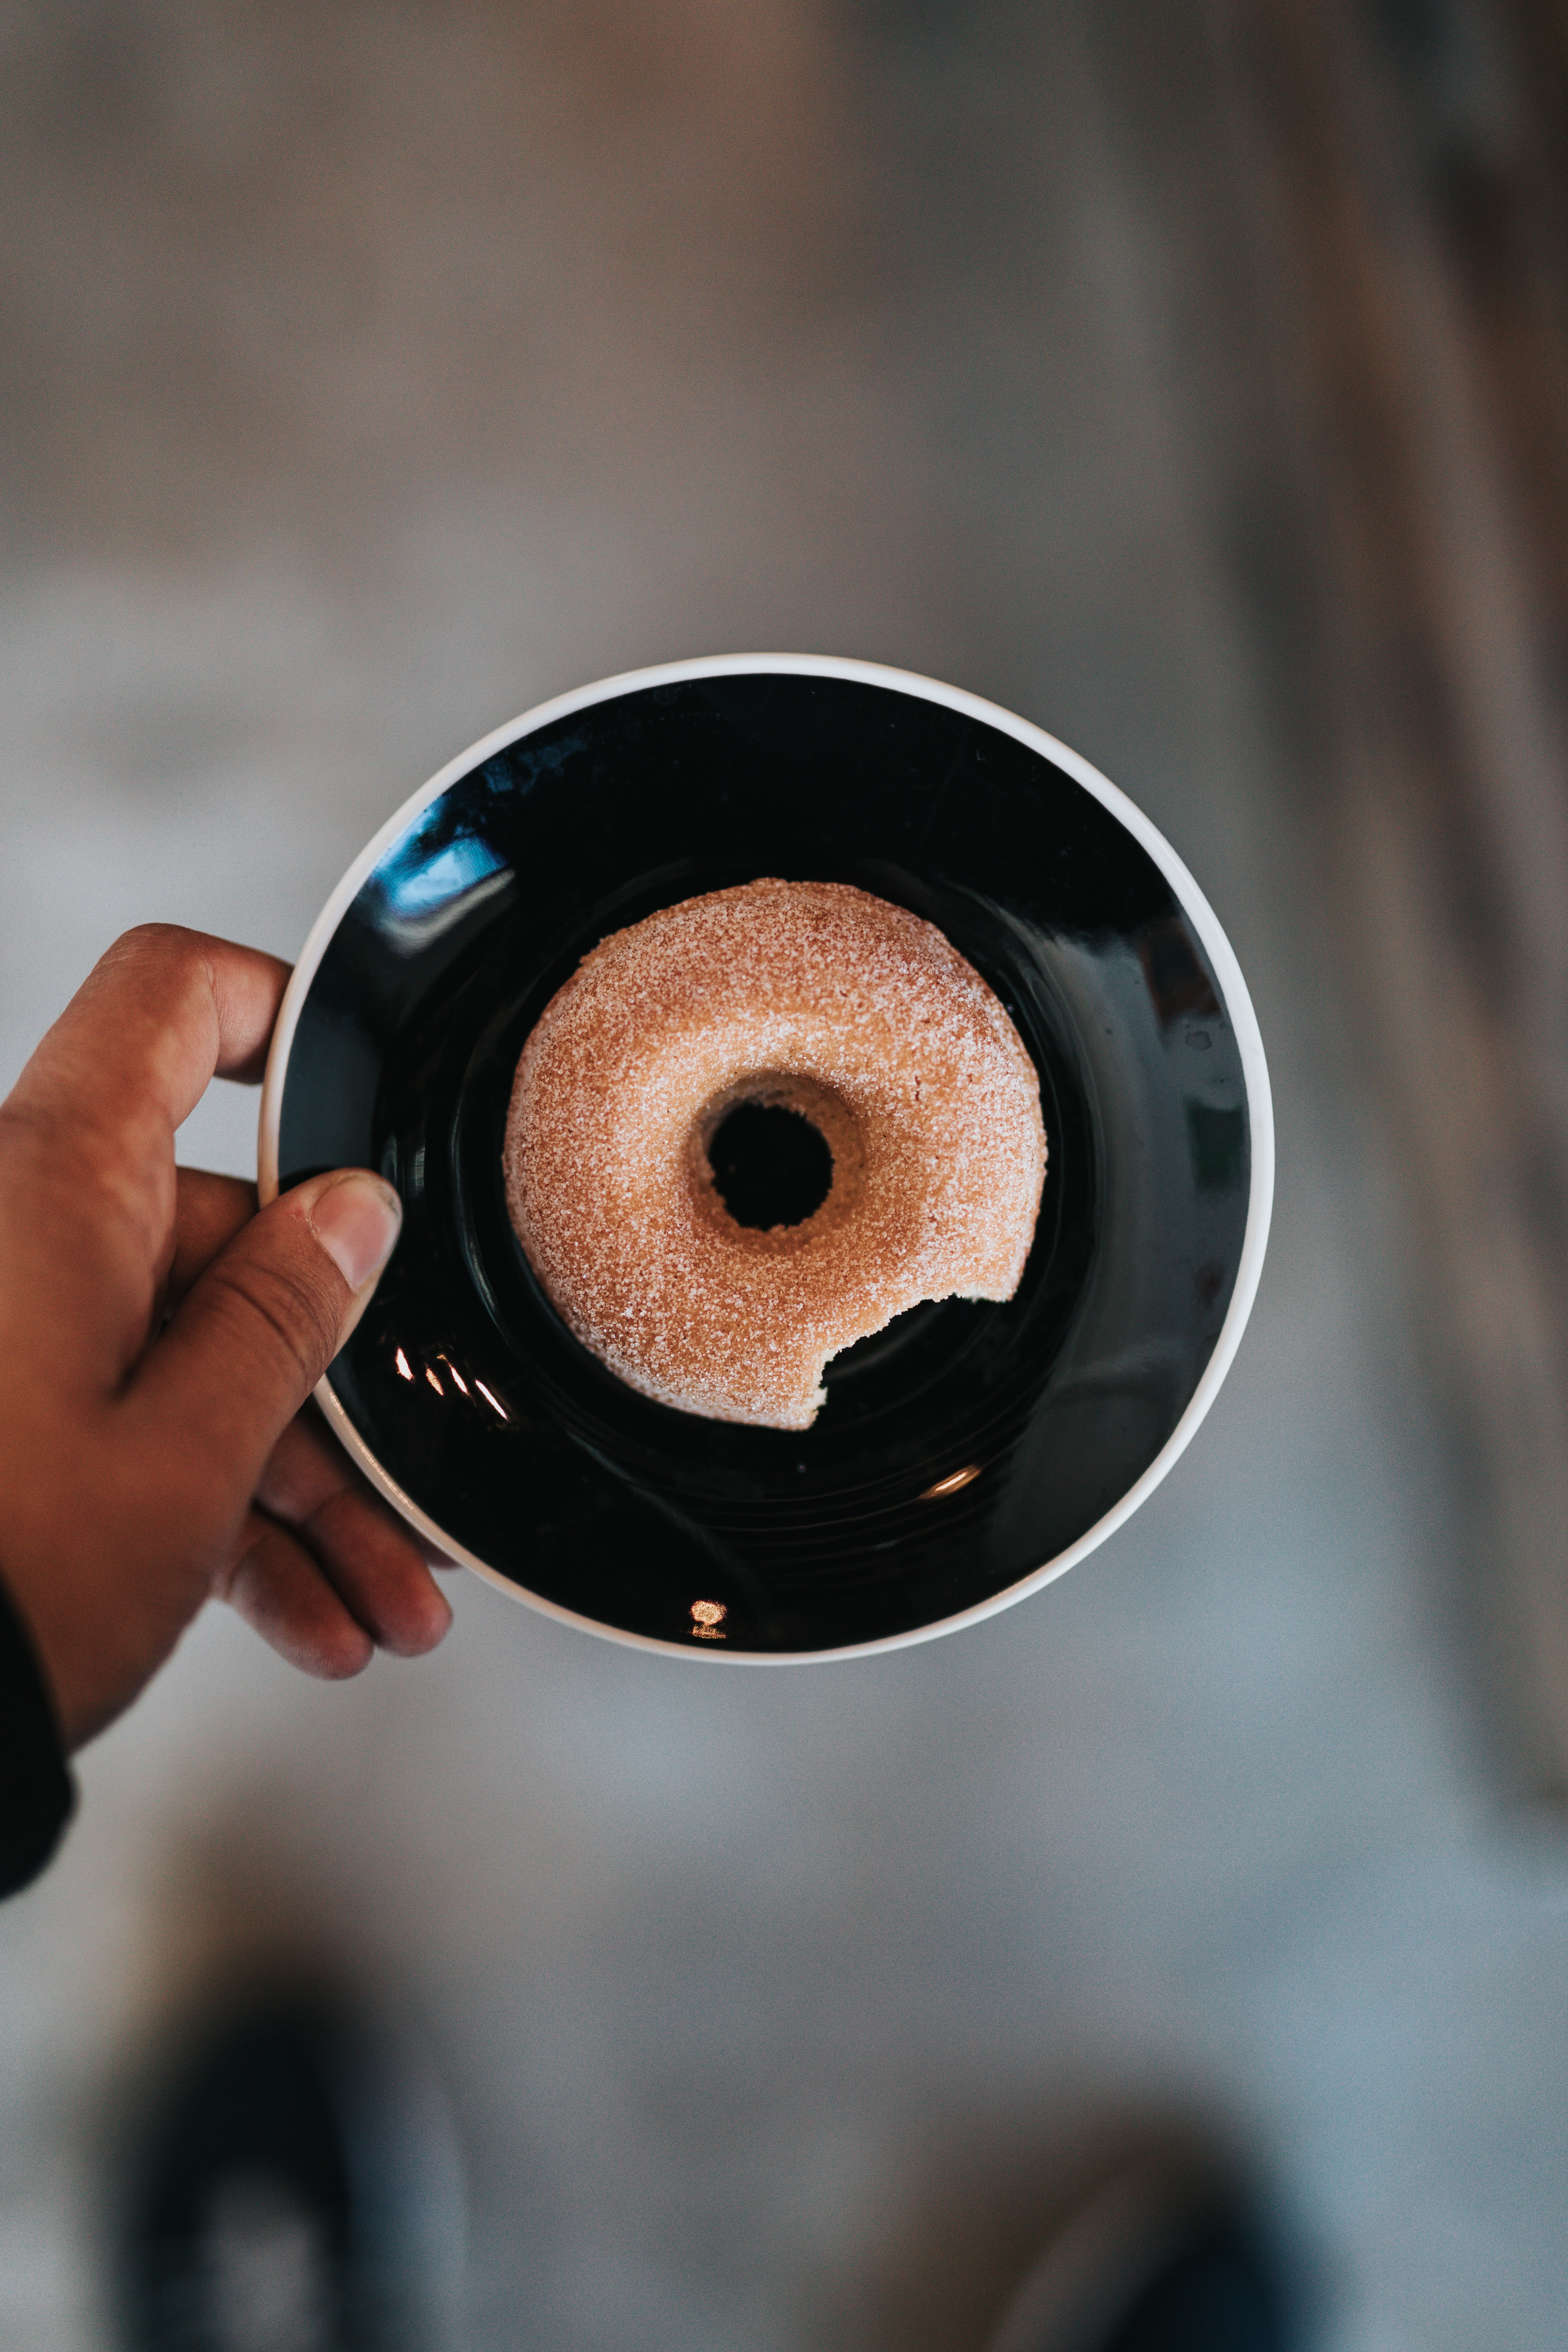 person holding black ceramic plate with donut